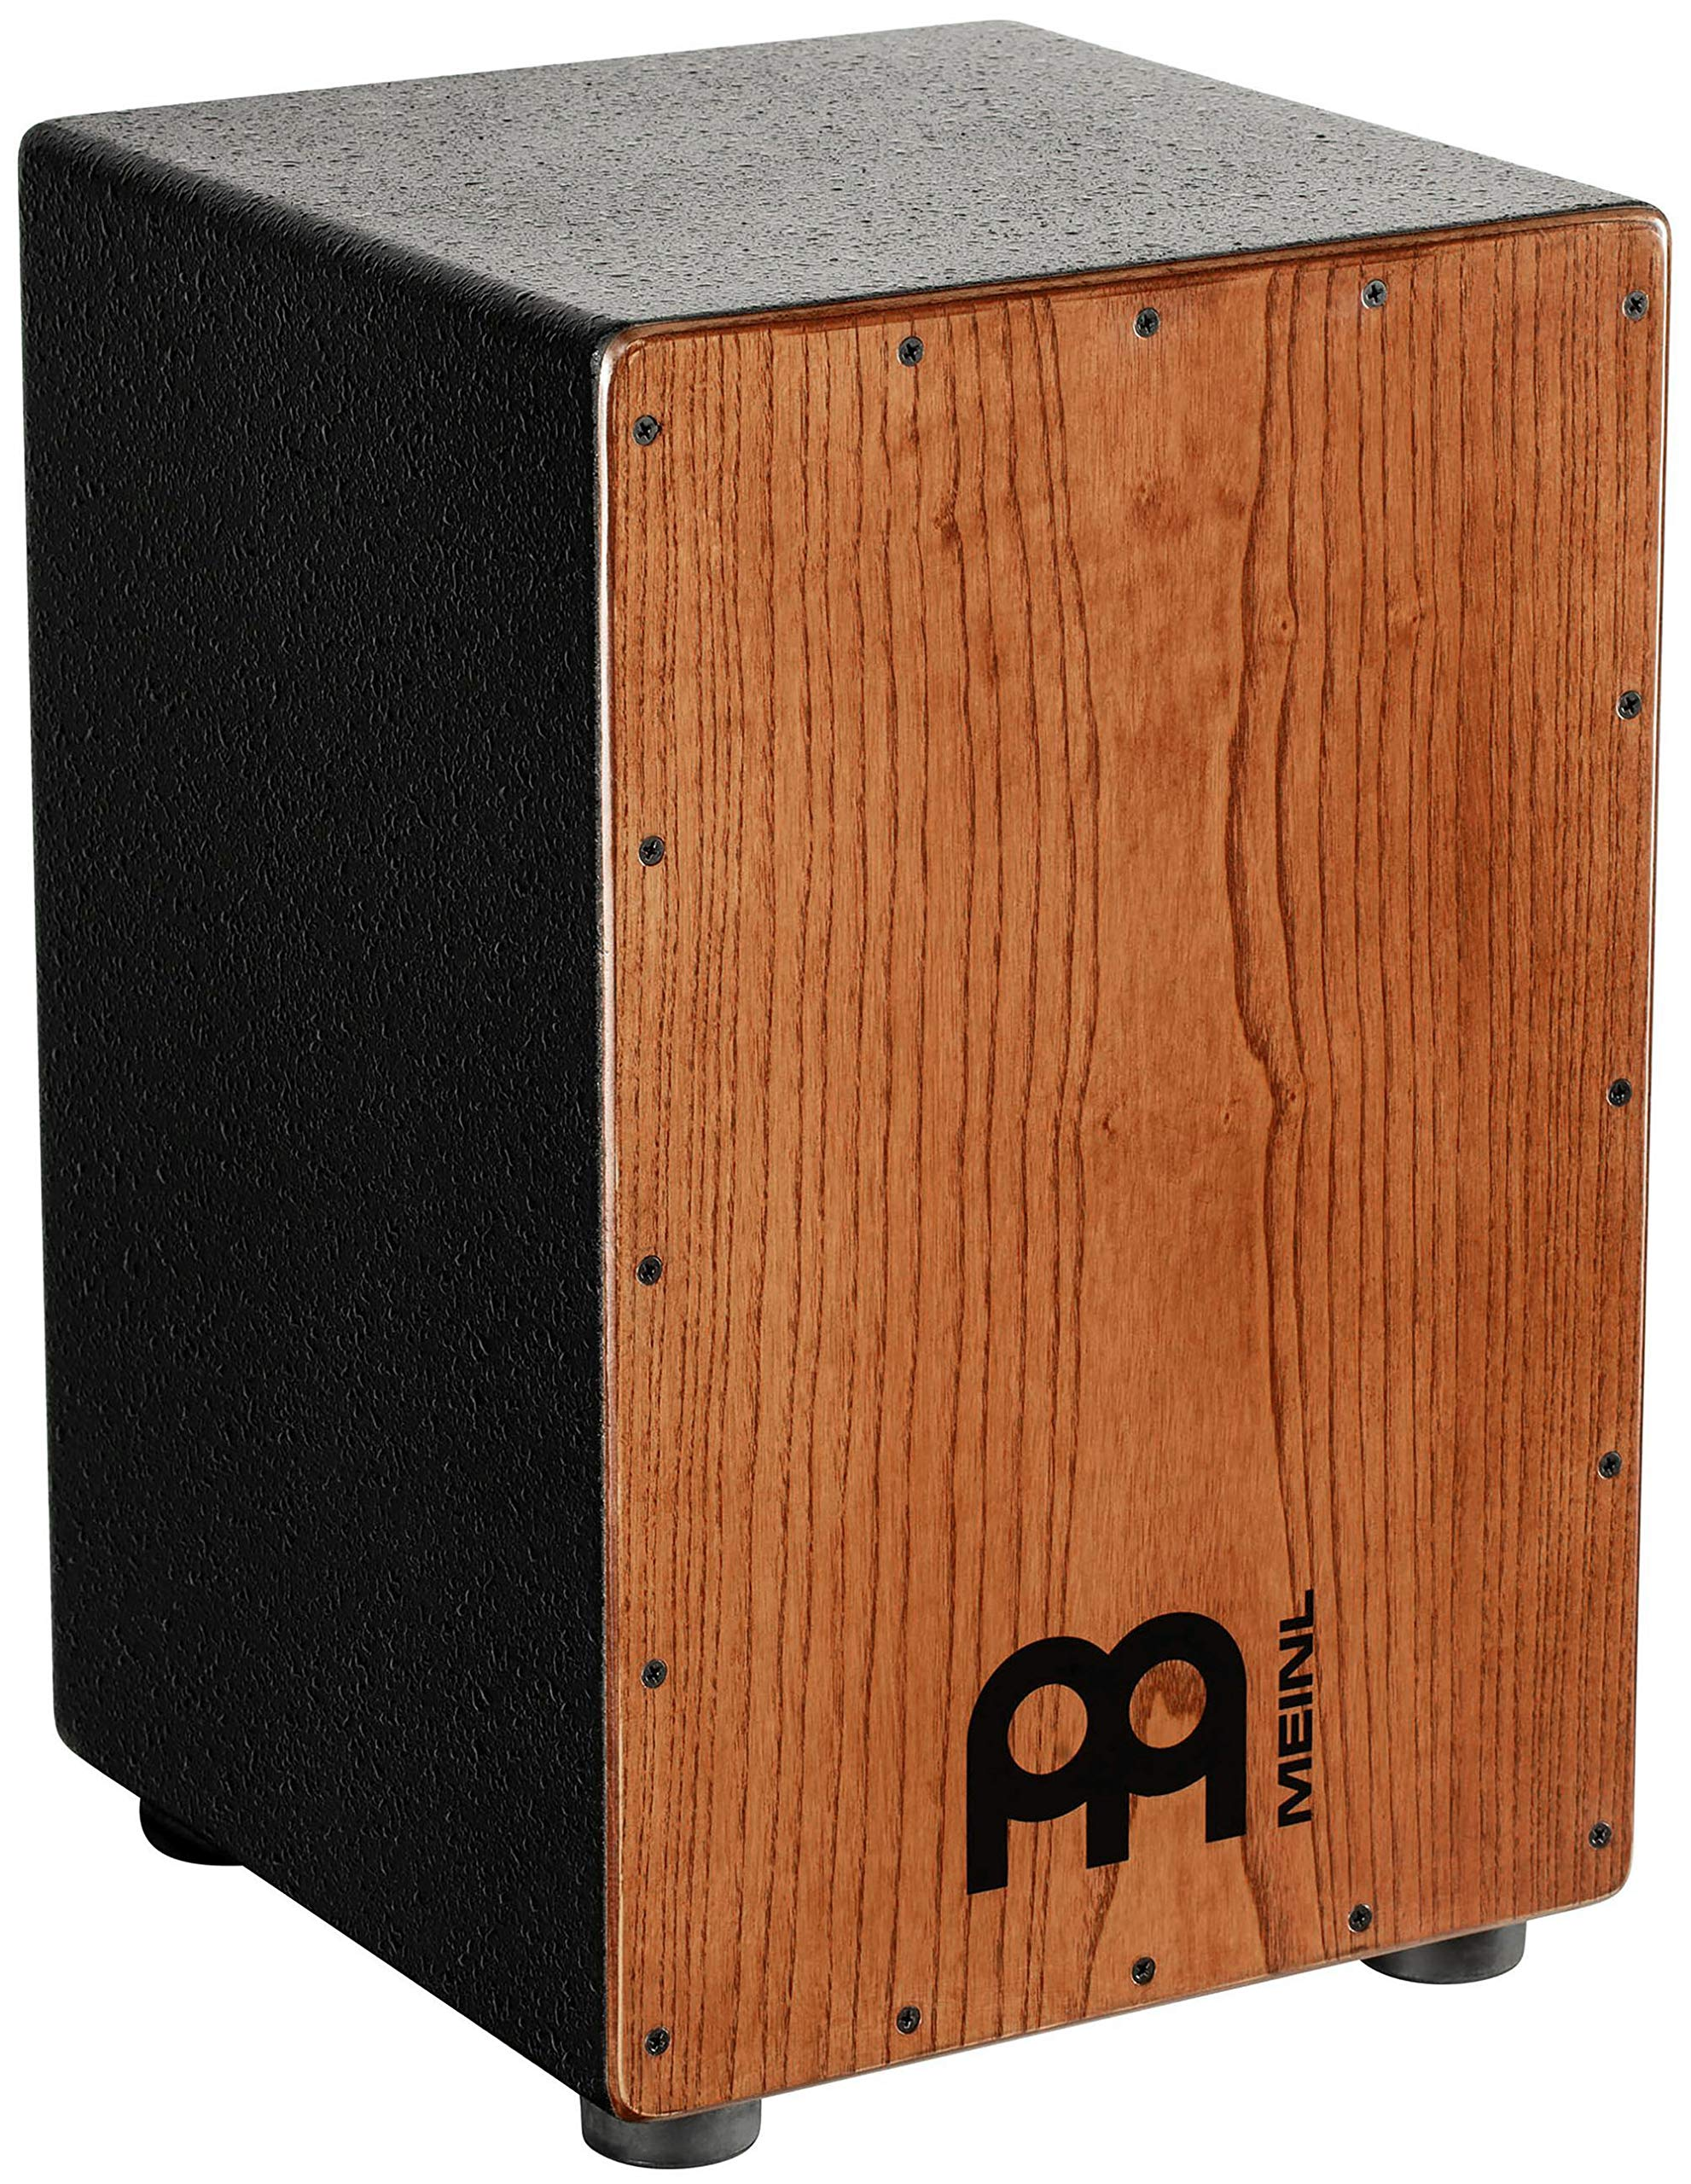 Meinl Percussion Cajon with Internal Metal Strings for Adjustable Snare Effect - NOT MADE IN CHINA - American White Ash with MDF Body, 2-YEAR WARRANTY, HCAJ1AWA) by Meinl Percussion